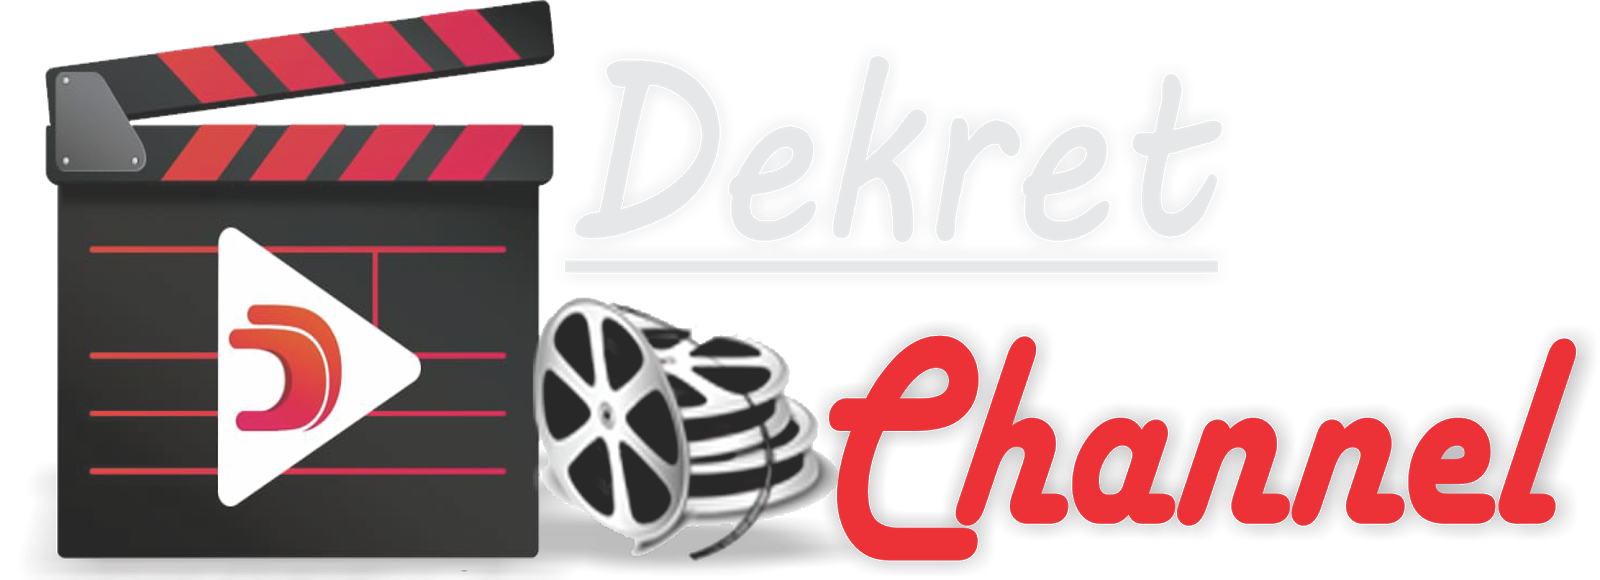 DEKRET CHANNEL